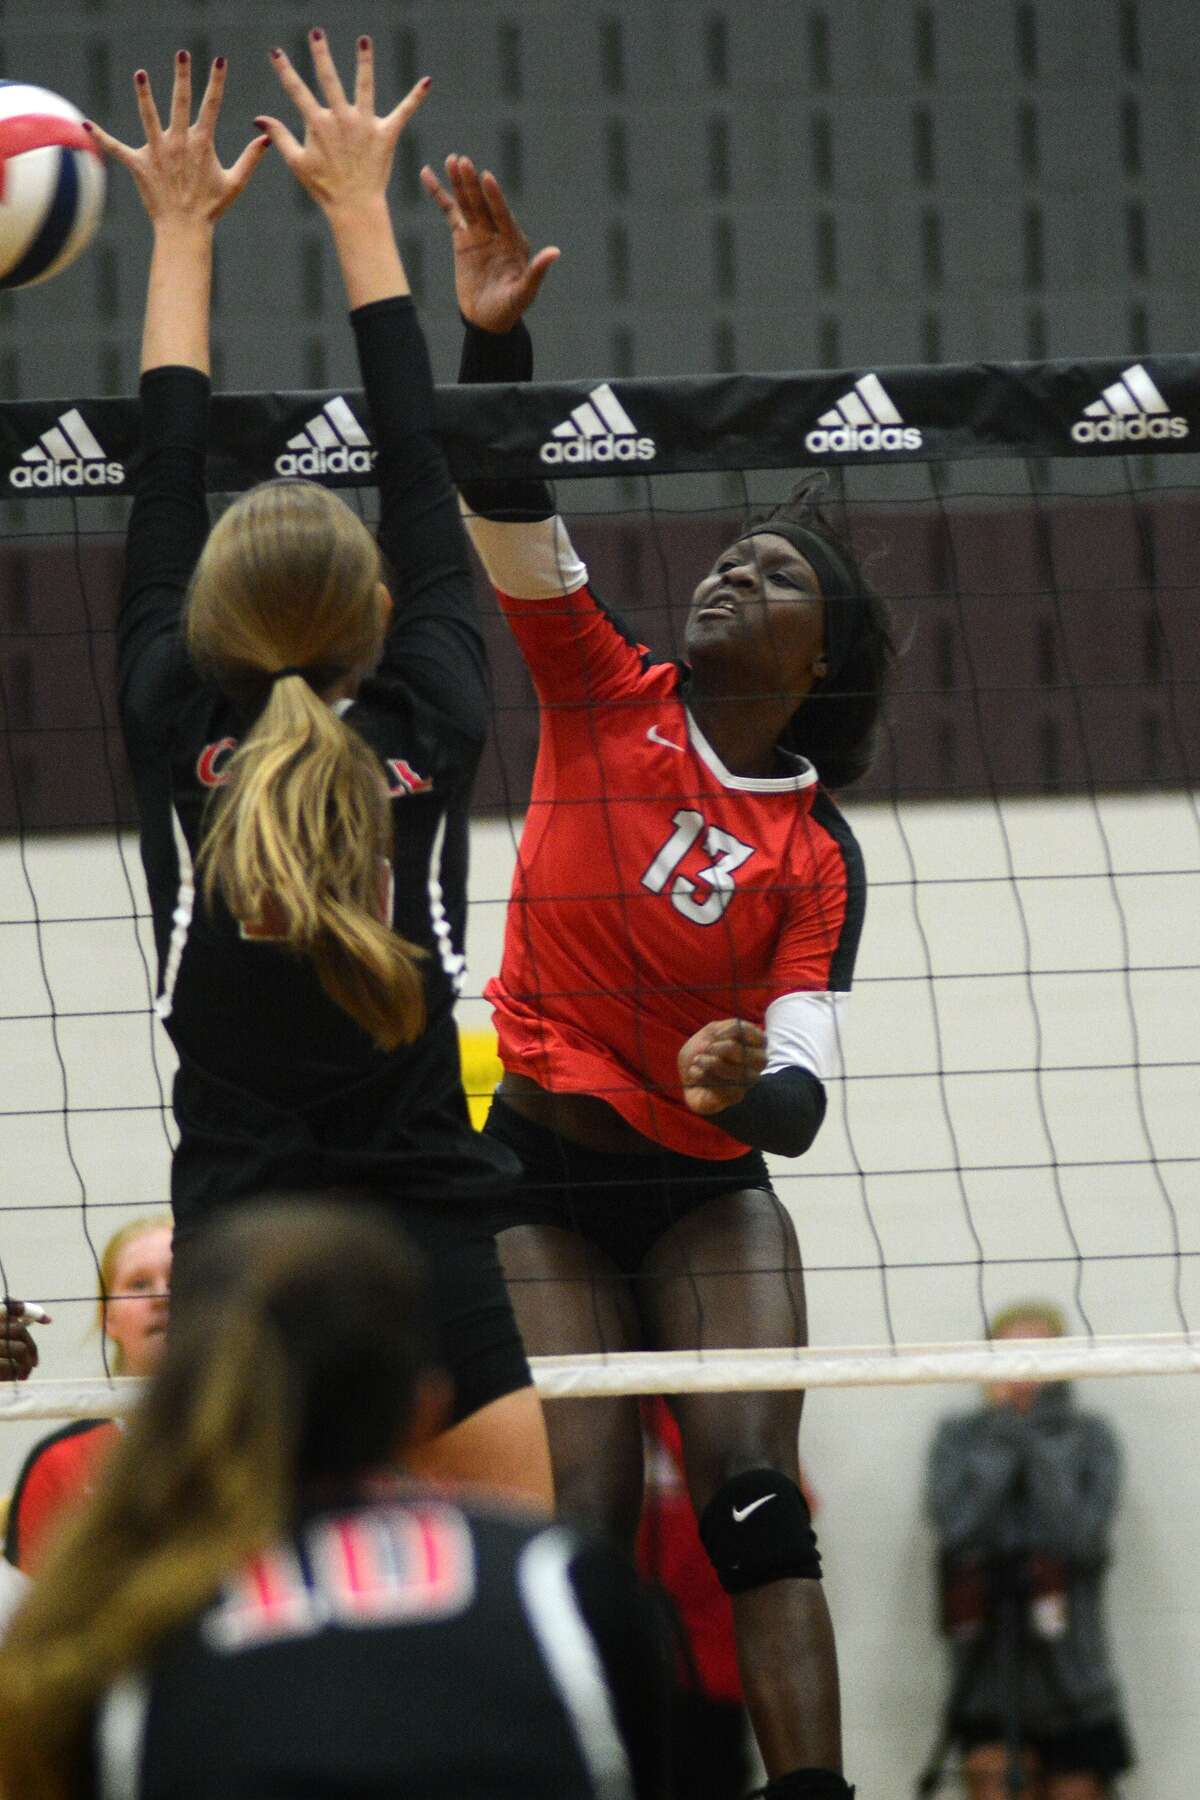 Bellaire junior outside hitter Maya Evans (13) works for a kill against a Coppell defender during Gold Bracket play at the 2015 Adidas Texas Volleyball Invitational at Pearland Dawson High School on Friday, August 14, 2015. (Photo by Jerry Baker/Freelance)